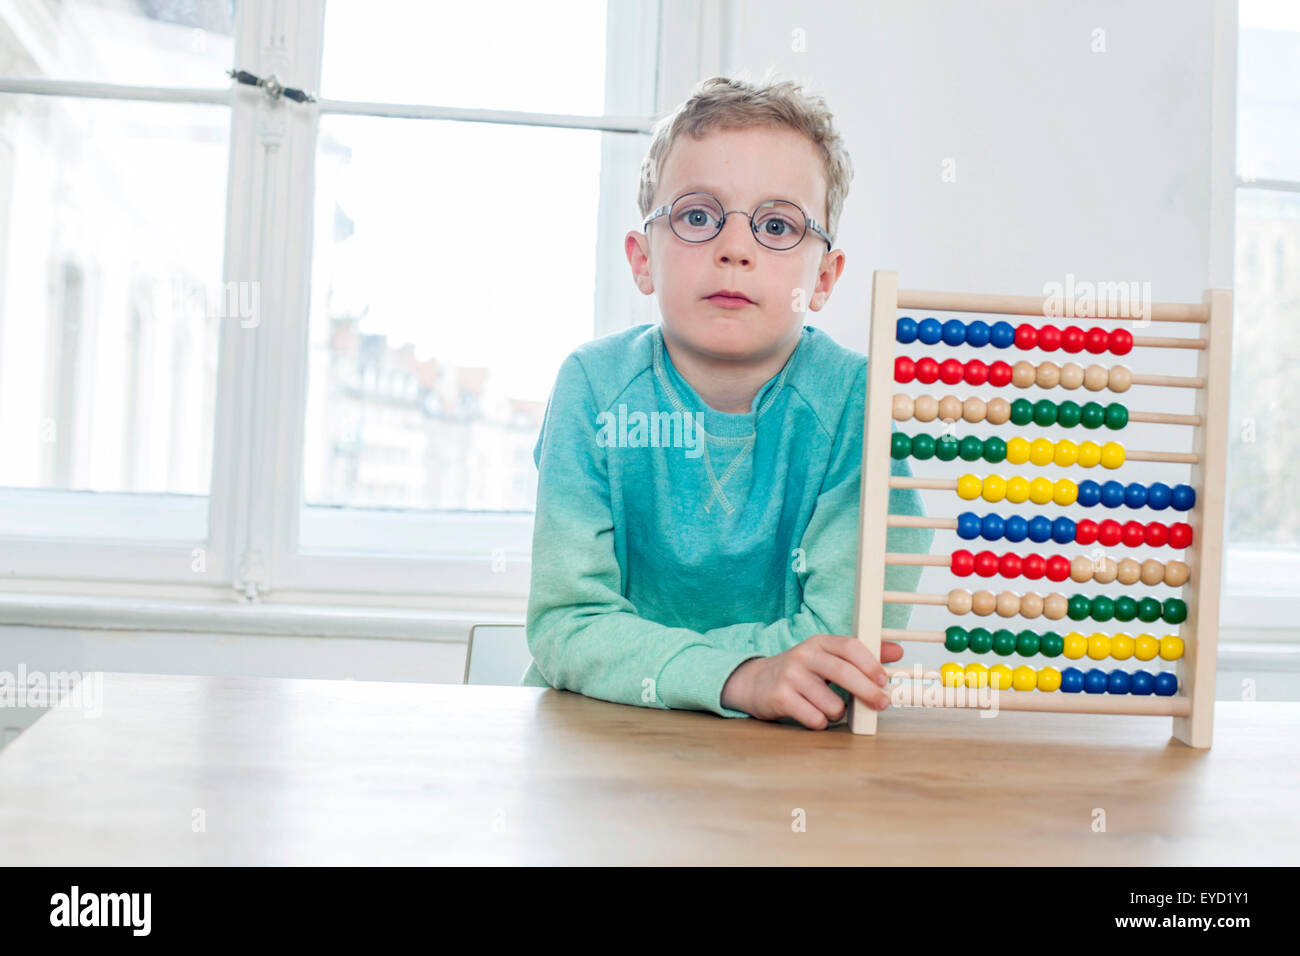 Boy calculating with abacus - Stock Image